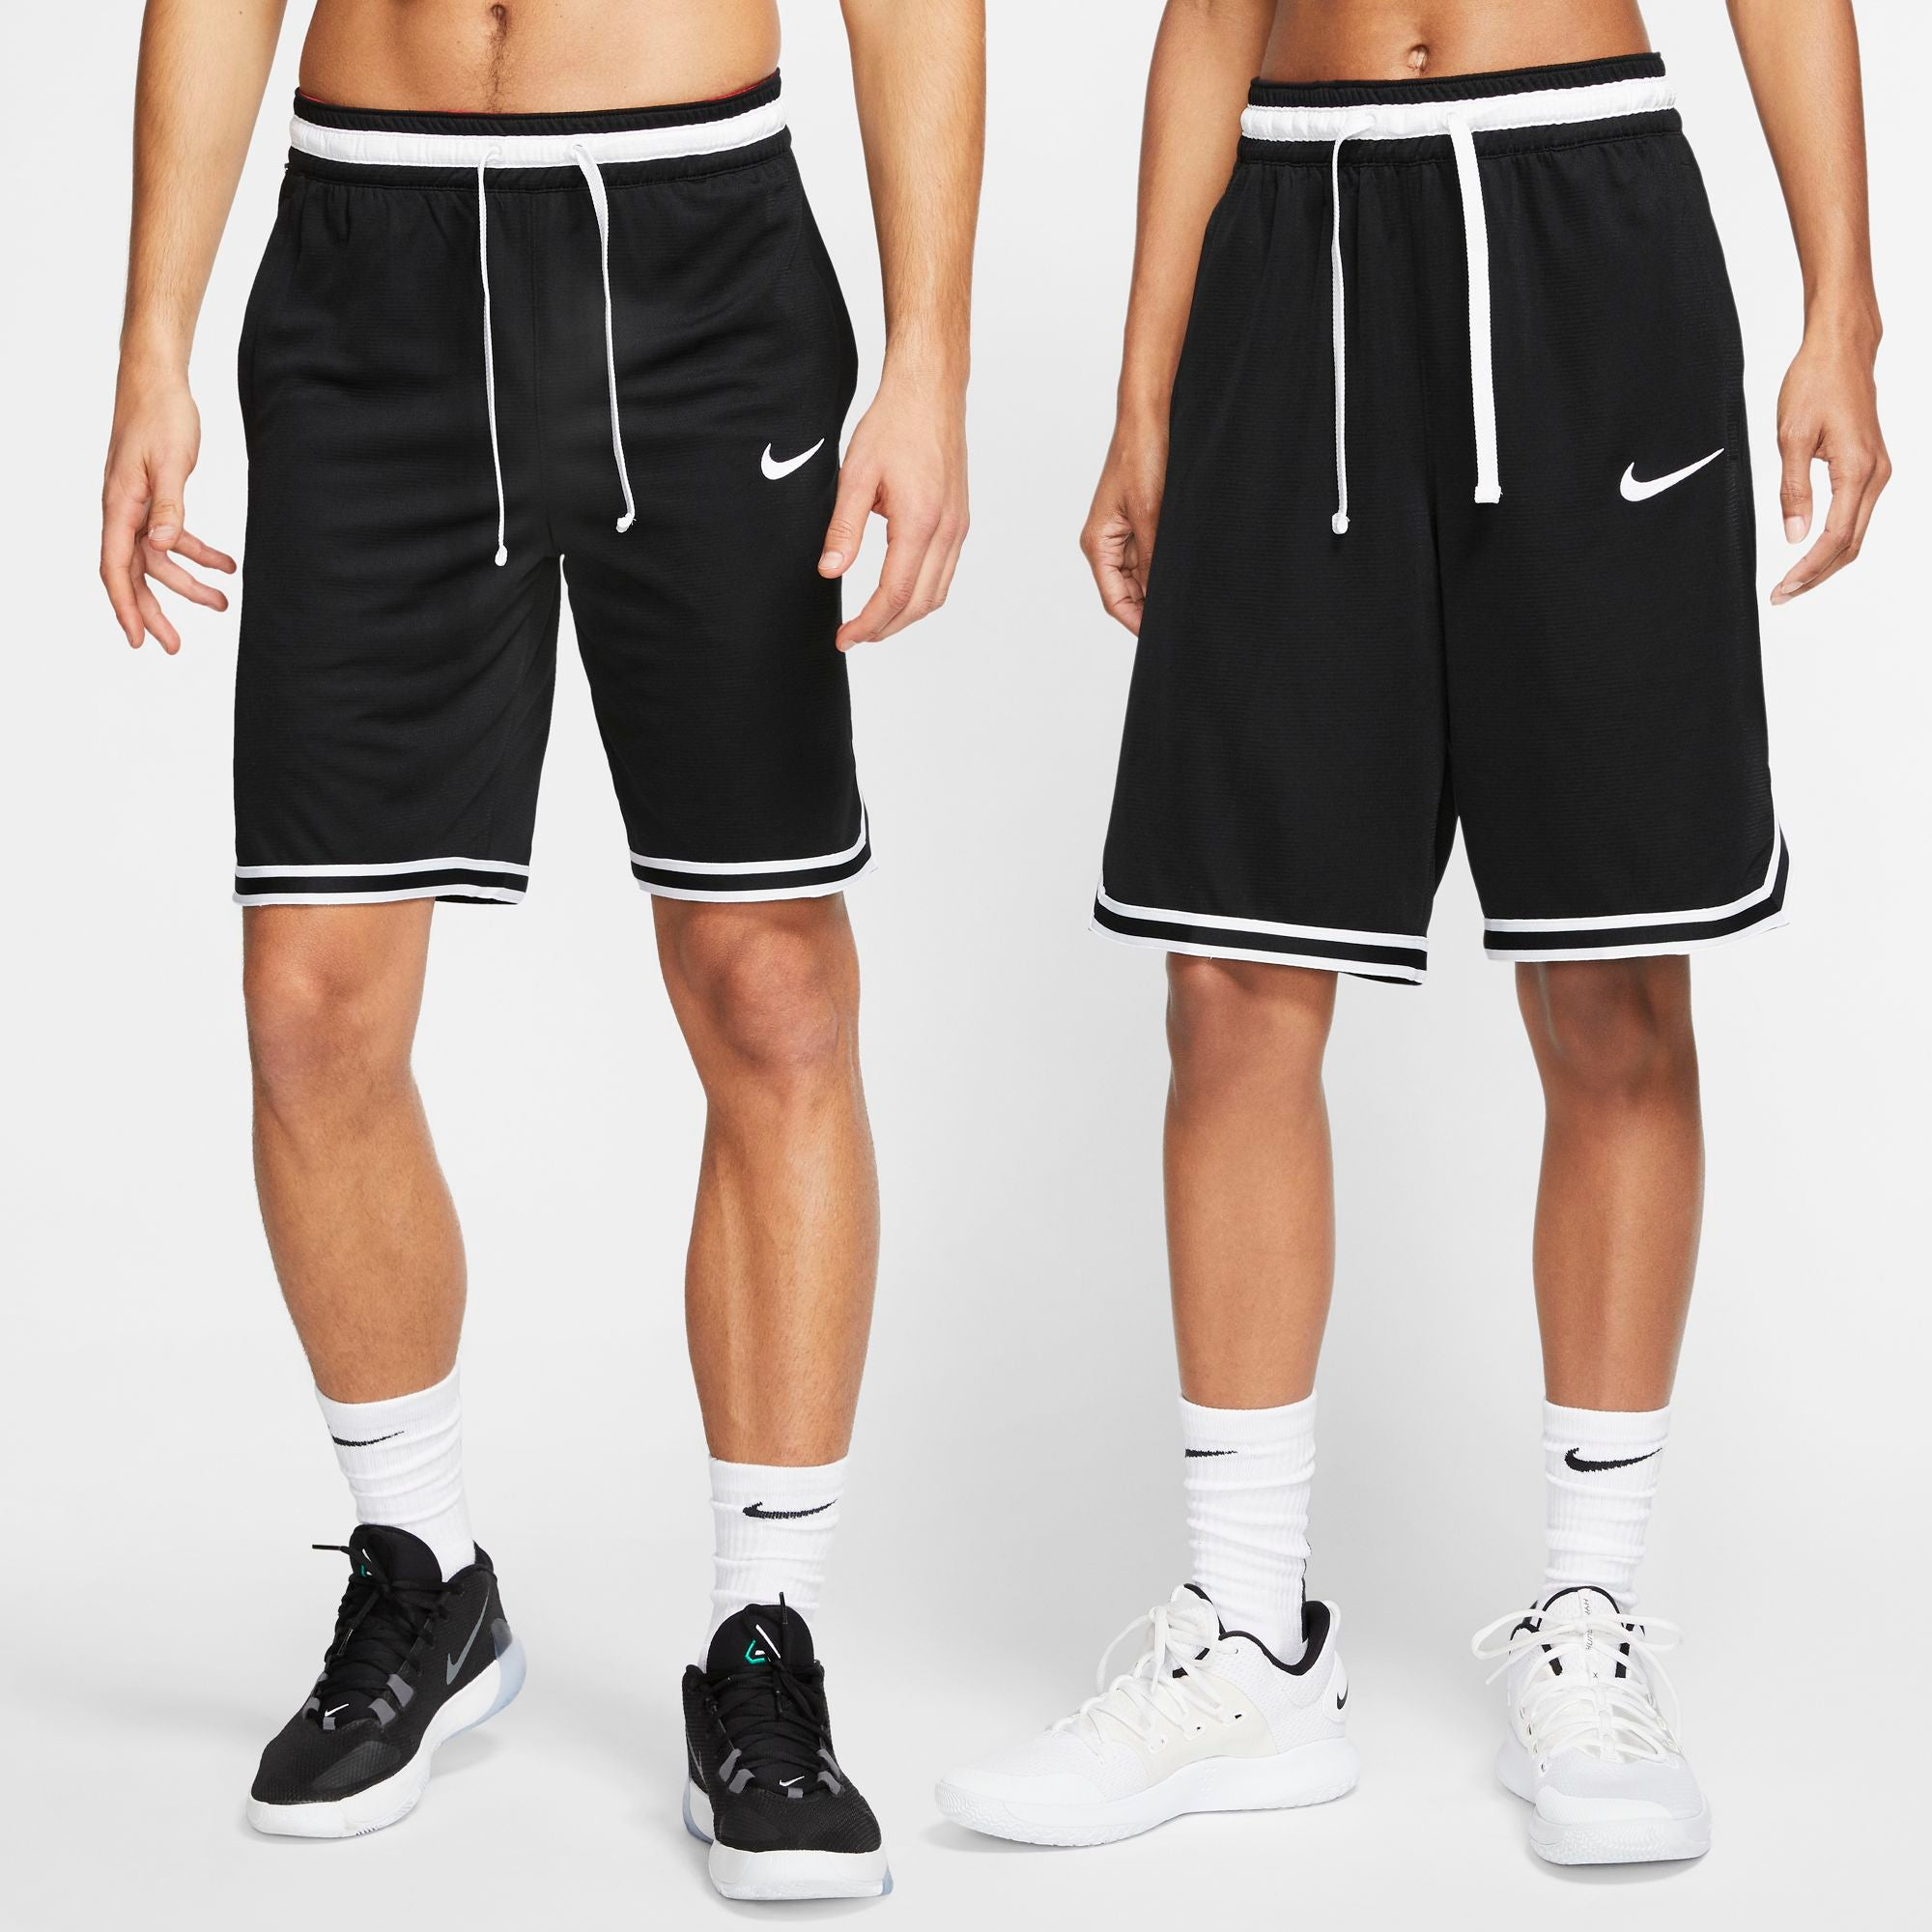 Nike Basketball Dri-fit DNA Shorts - Black/White